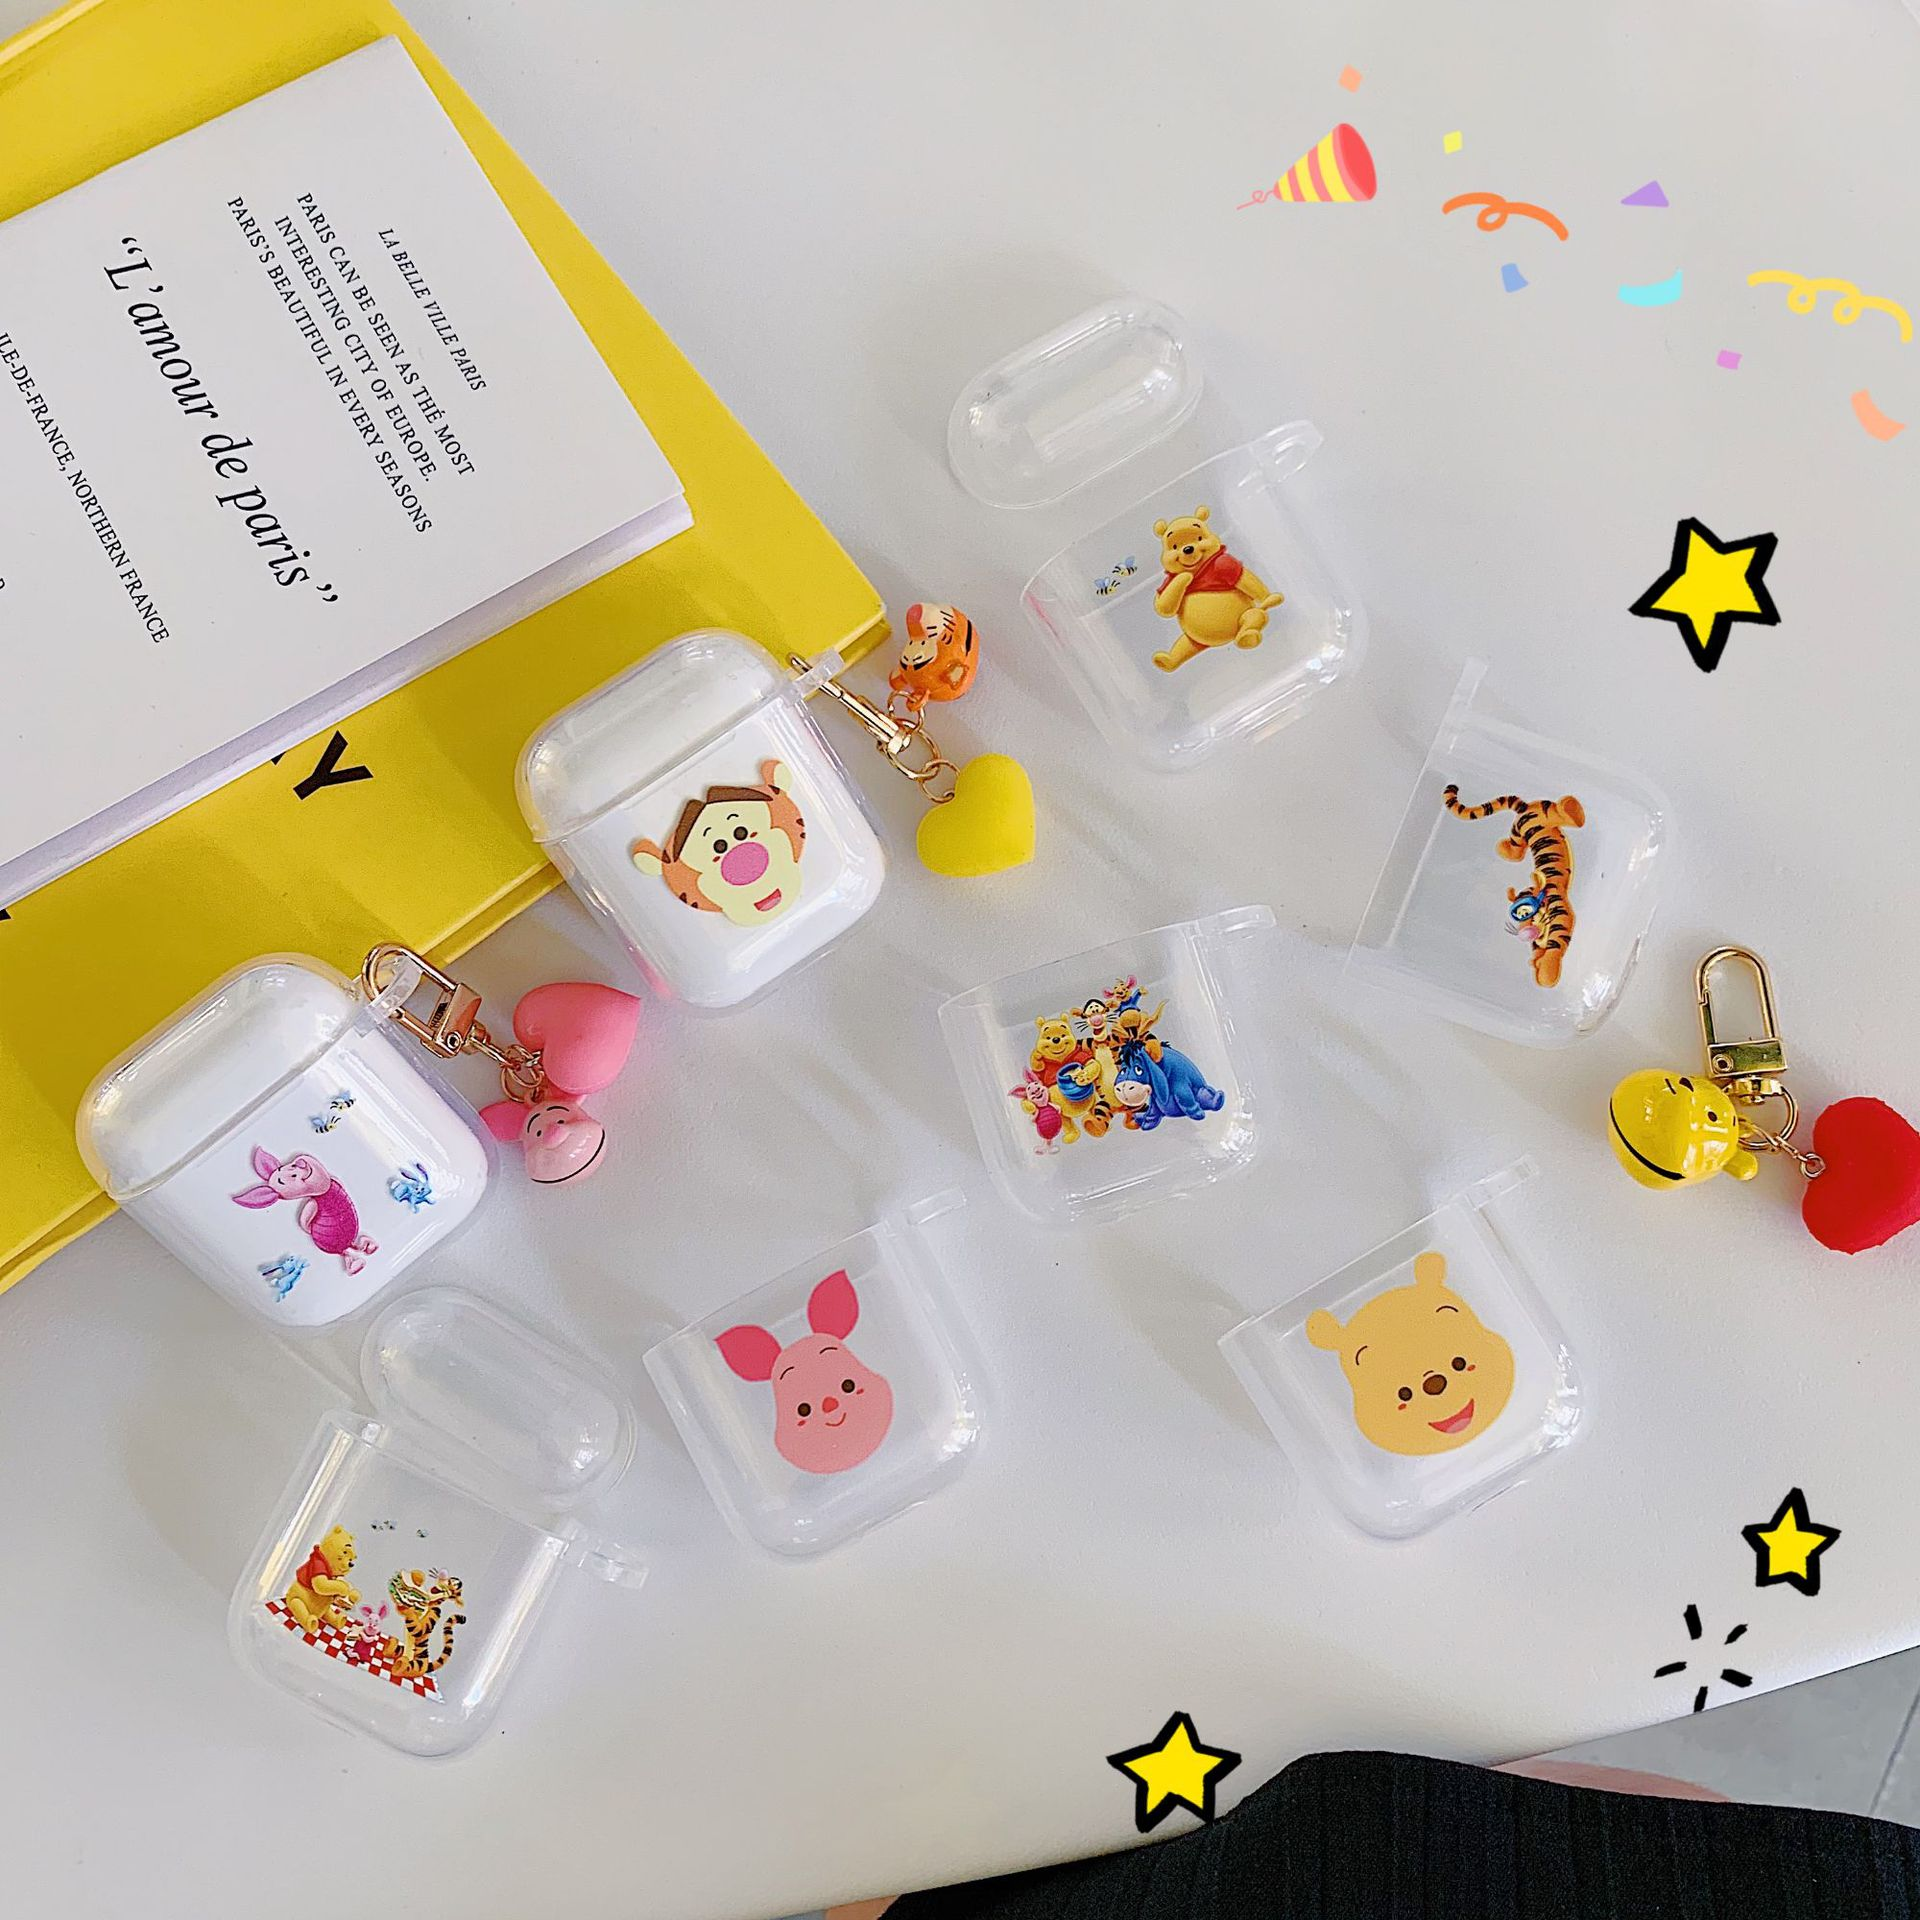 Buy Cute Cartoon Winnie Pooh Bear Piglet Hard Earphone Accessorie Set Hard PC Clear Case For Airpods 1 2 Charging Wireless Bluetooth for only 2.88 USD